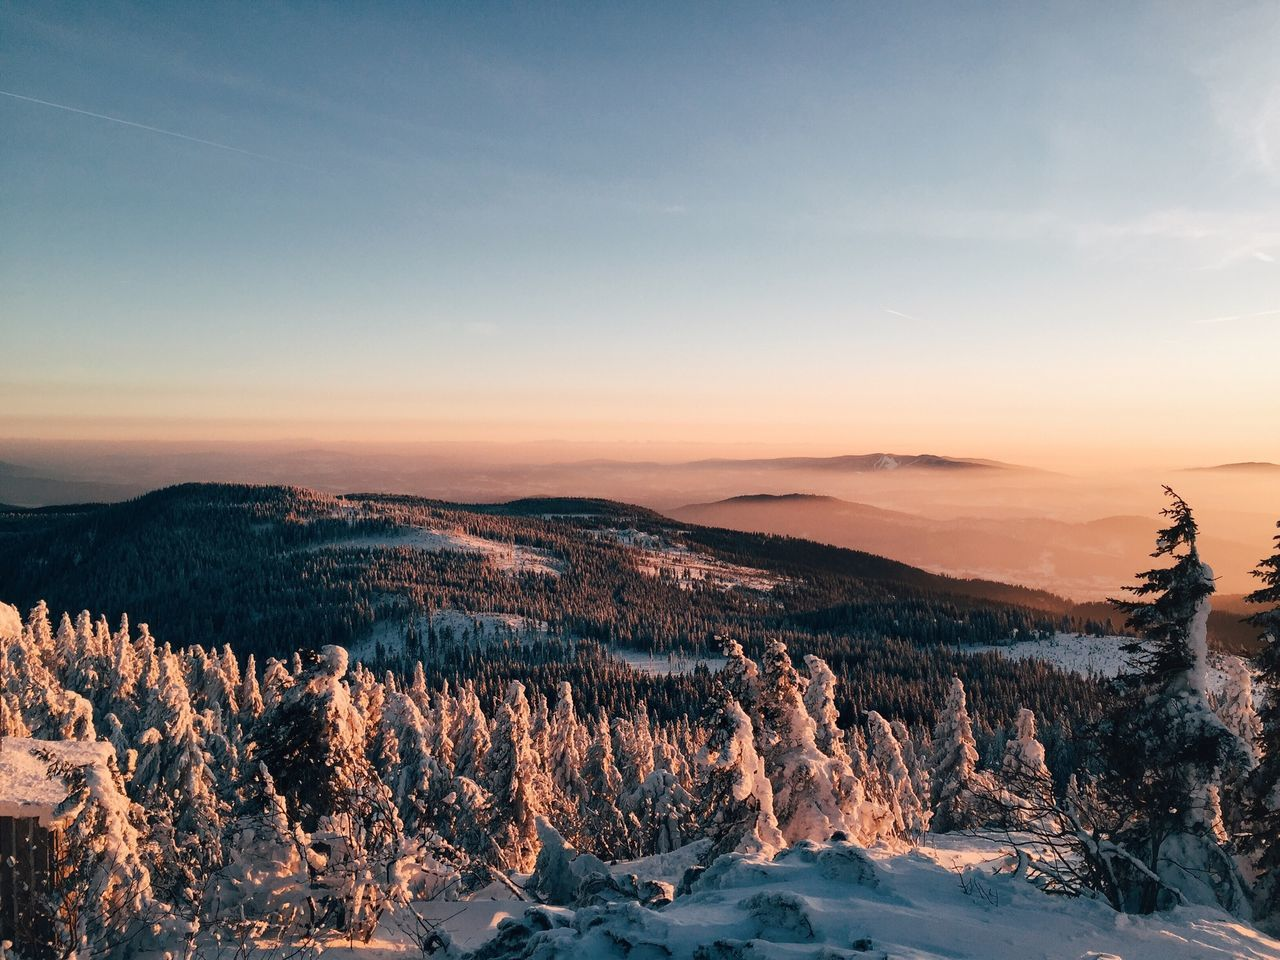 Snow covered trees on mountain against sky during sunset